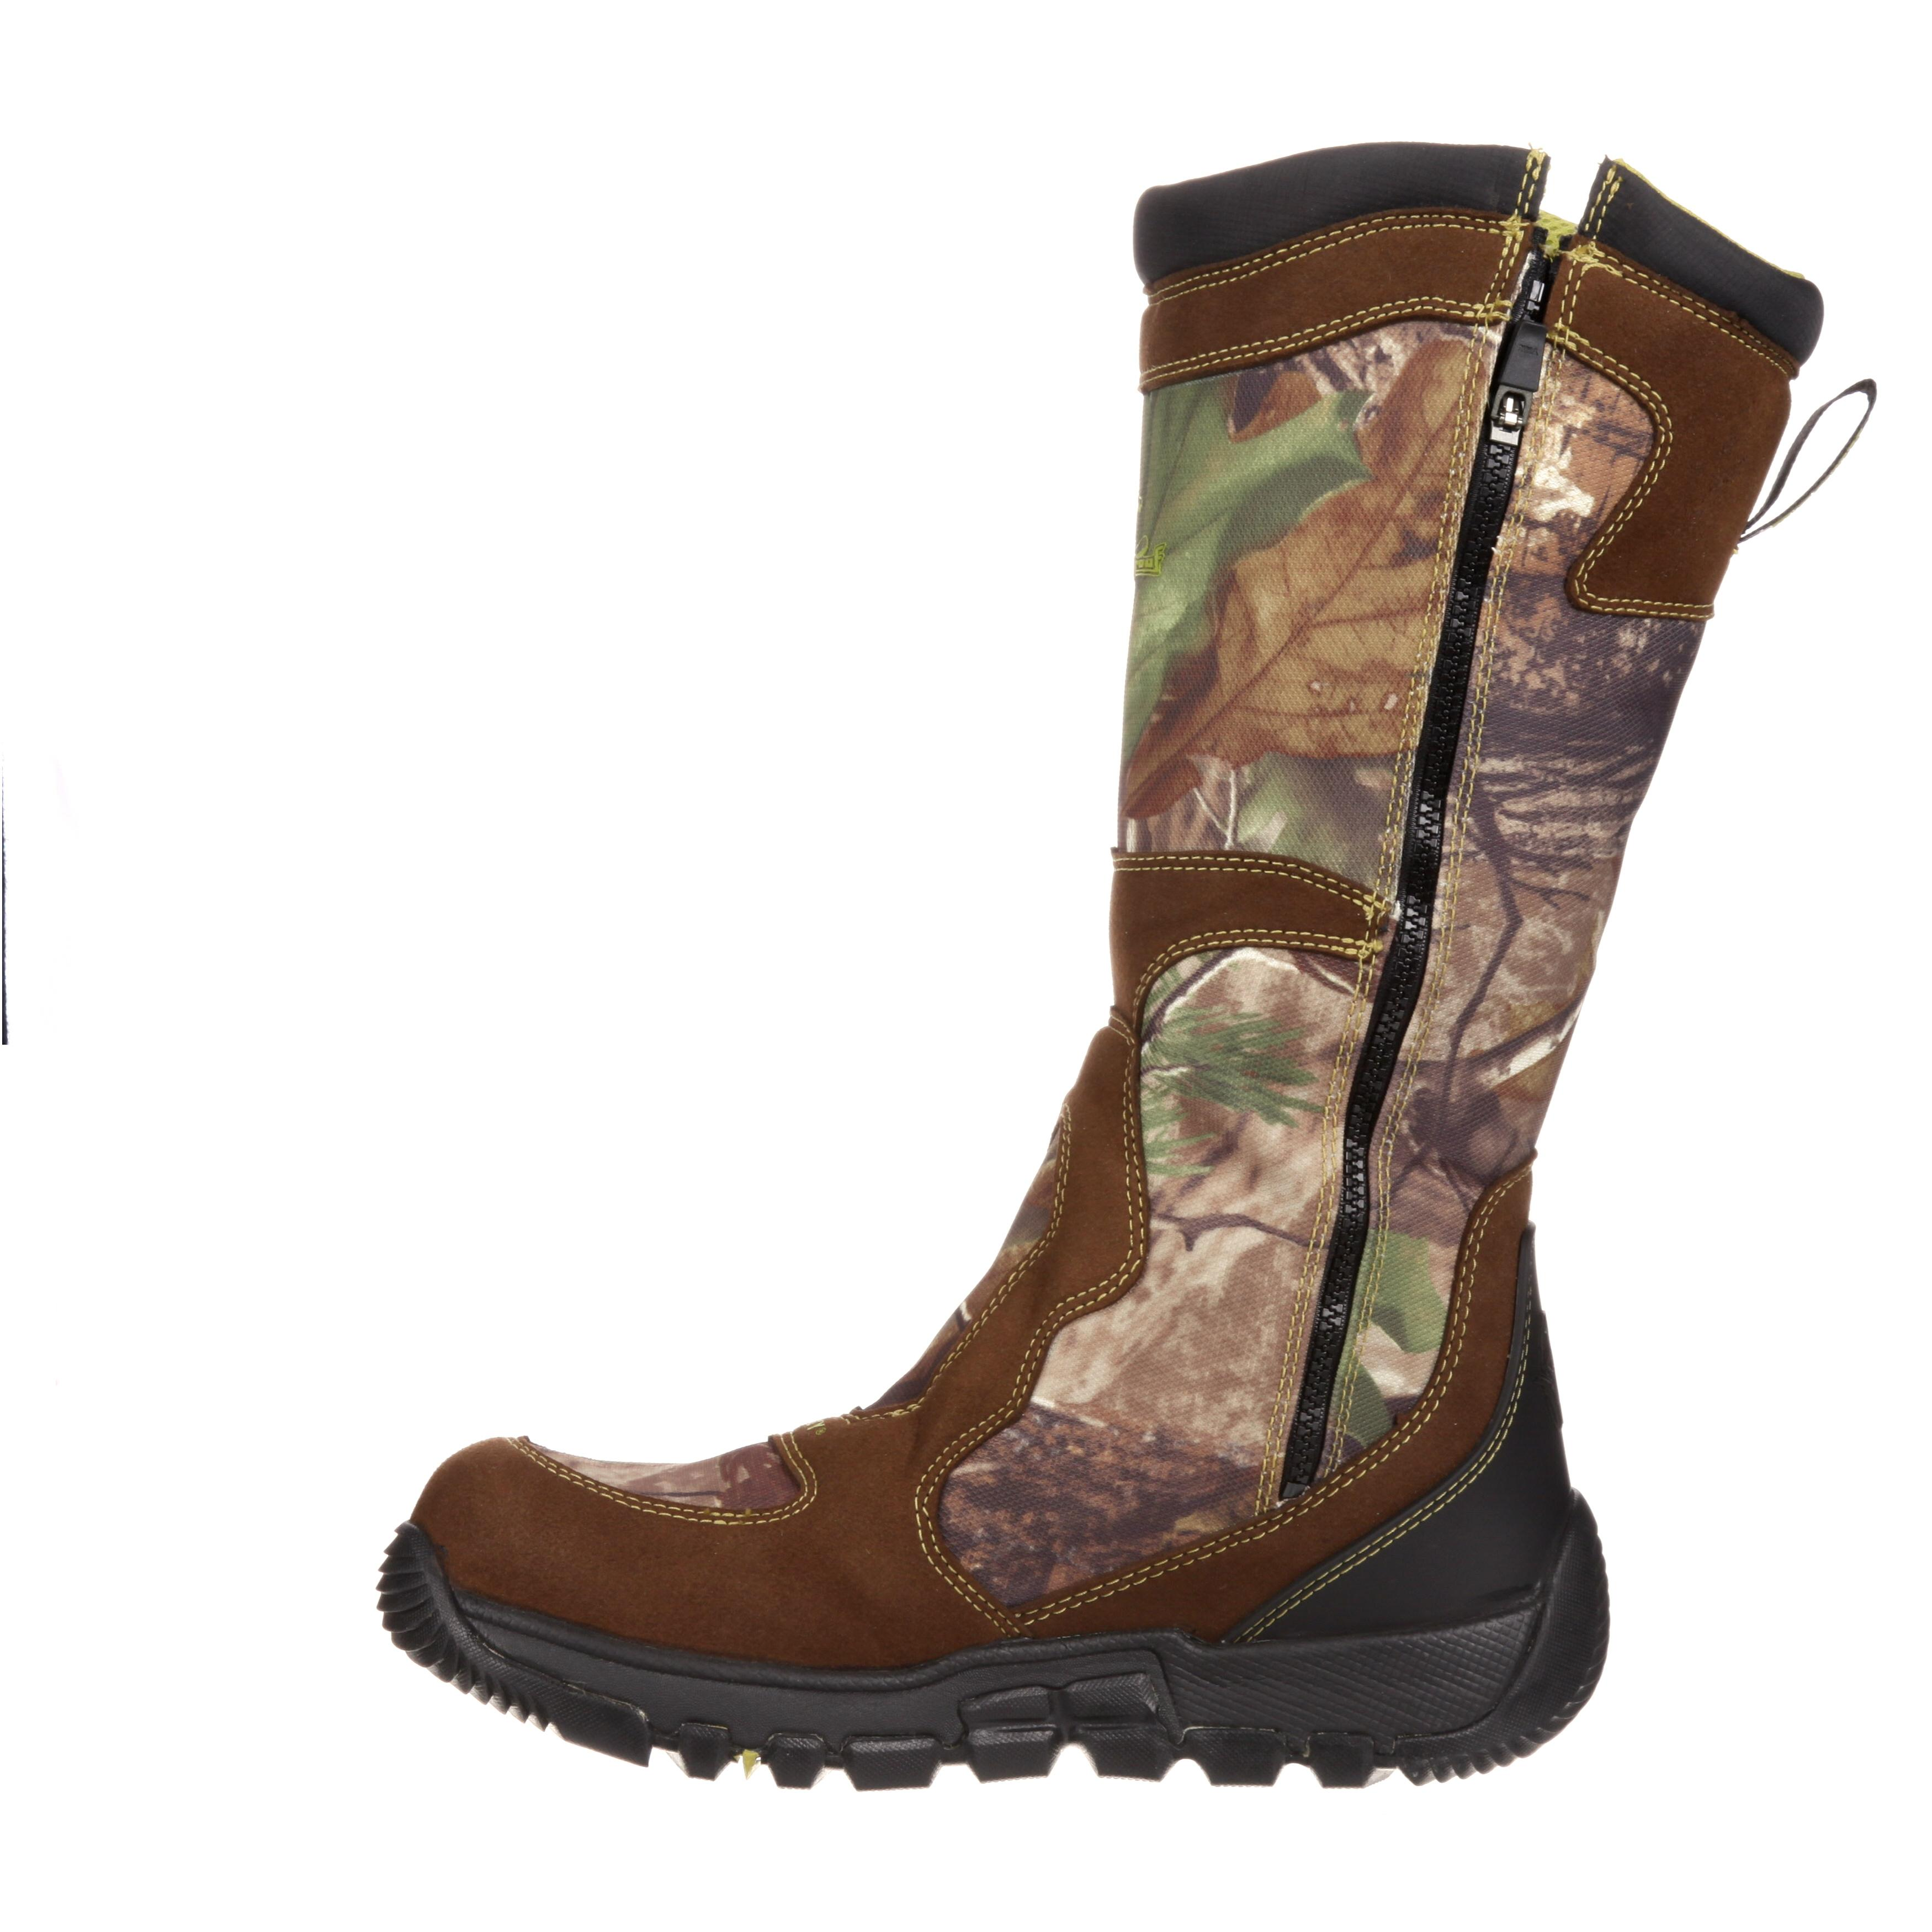 Hunting & Outdoor Boots: Rocky Athletic Mobility L3 Men's 16 ...